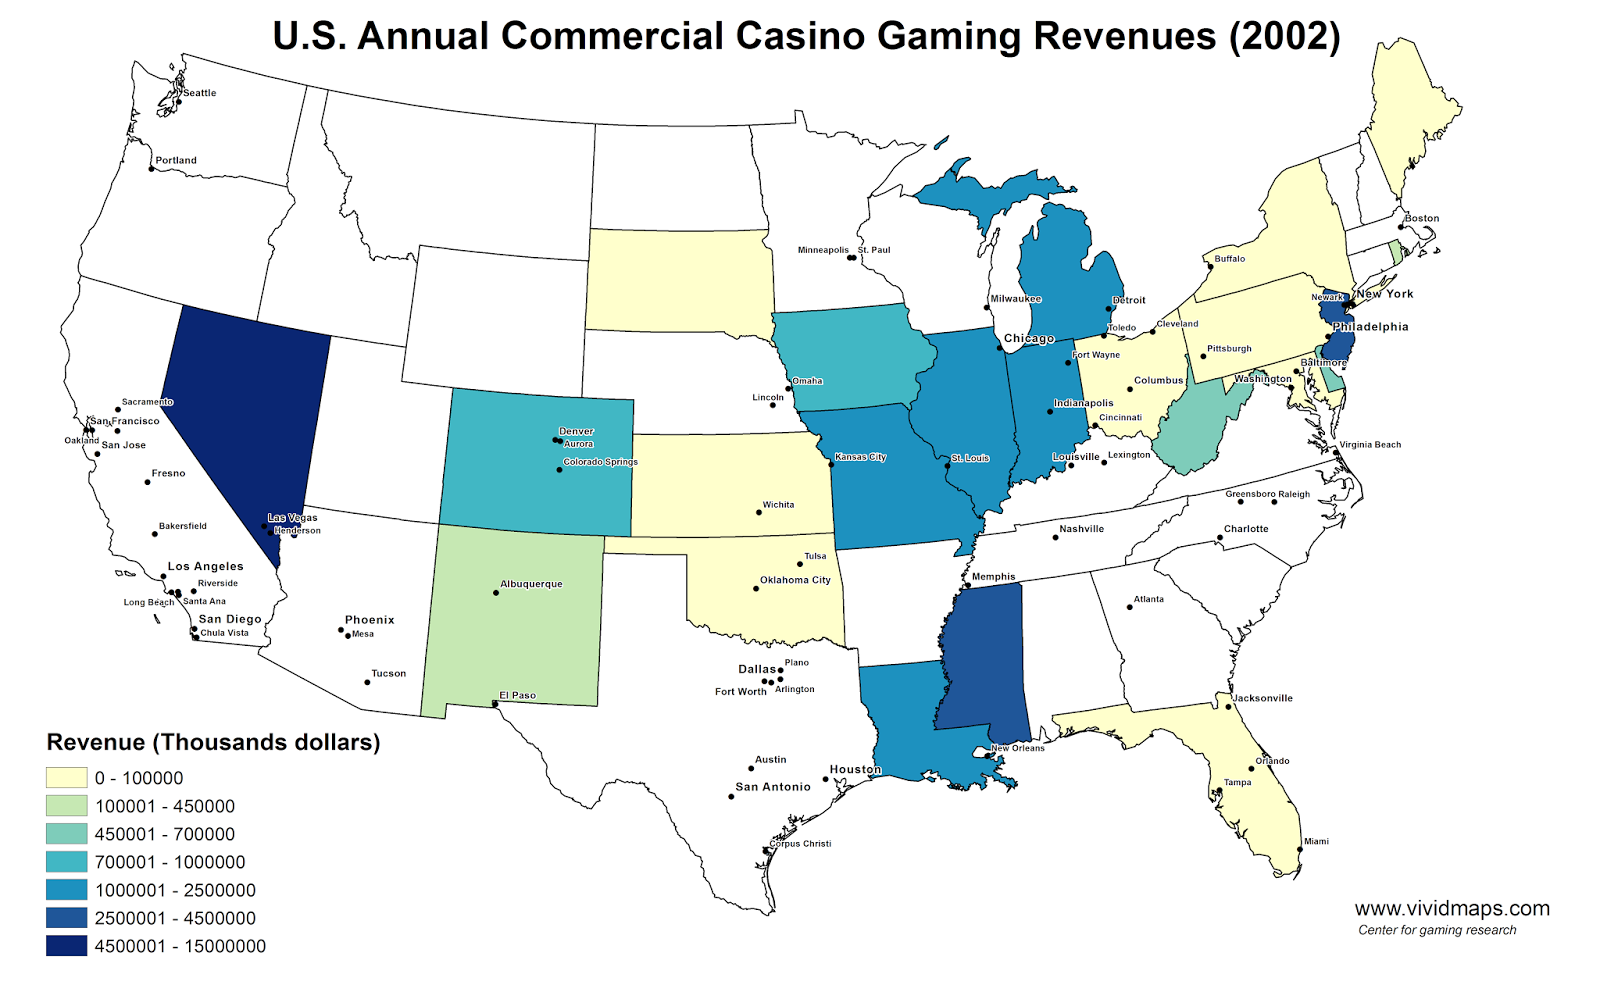 U.S. Annual Commercial Casino Gaming Revenues (2002)